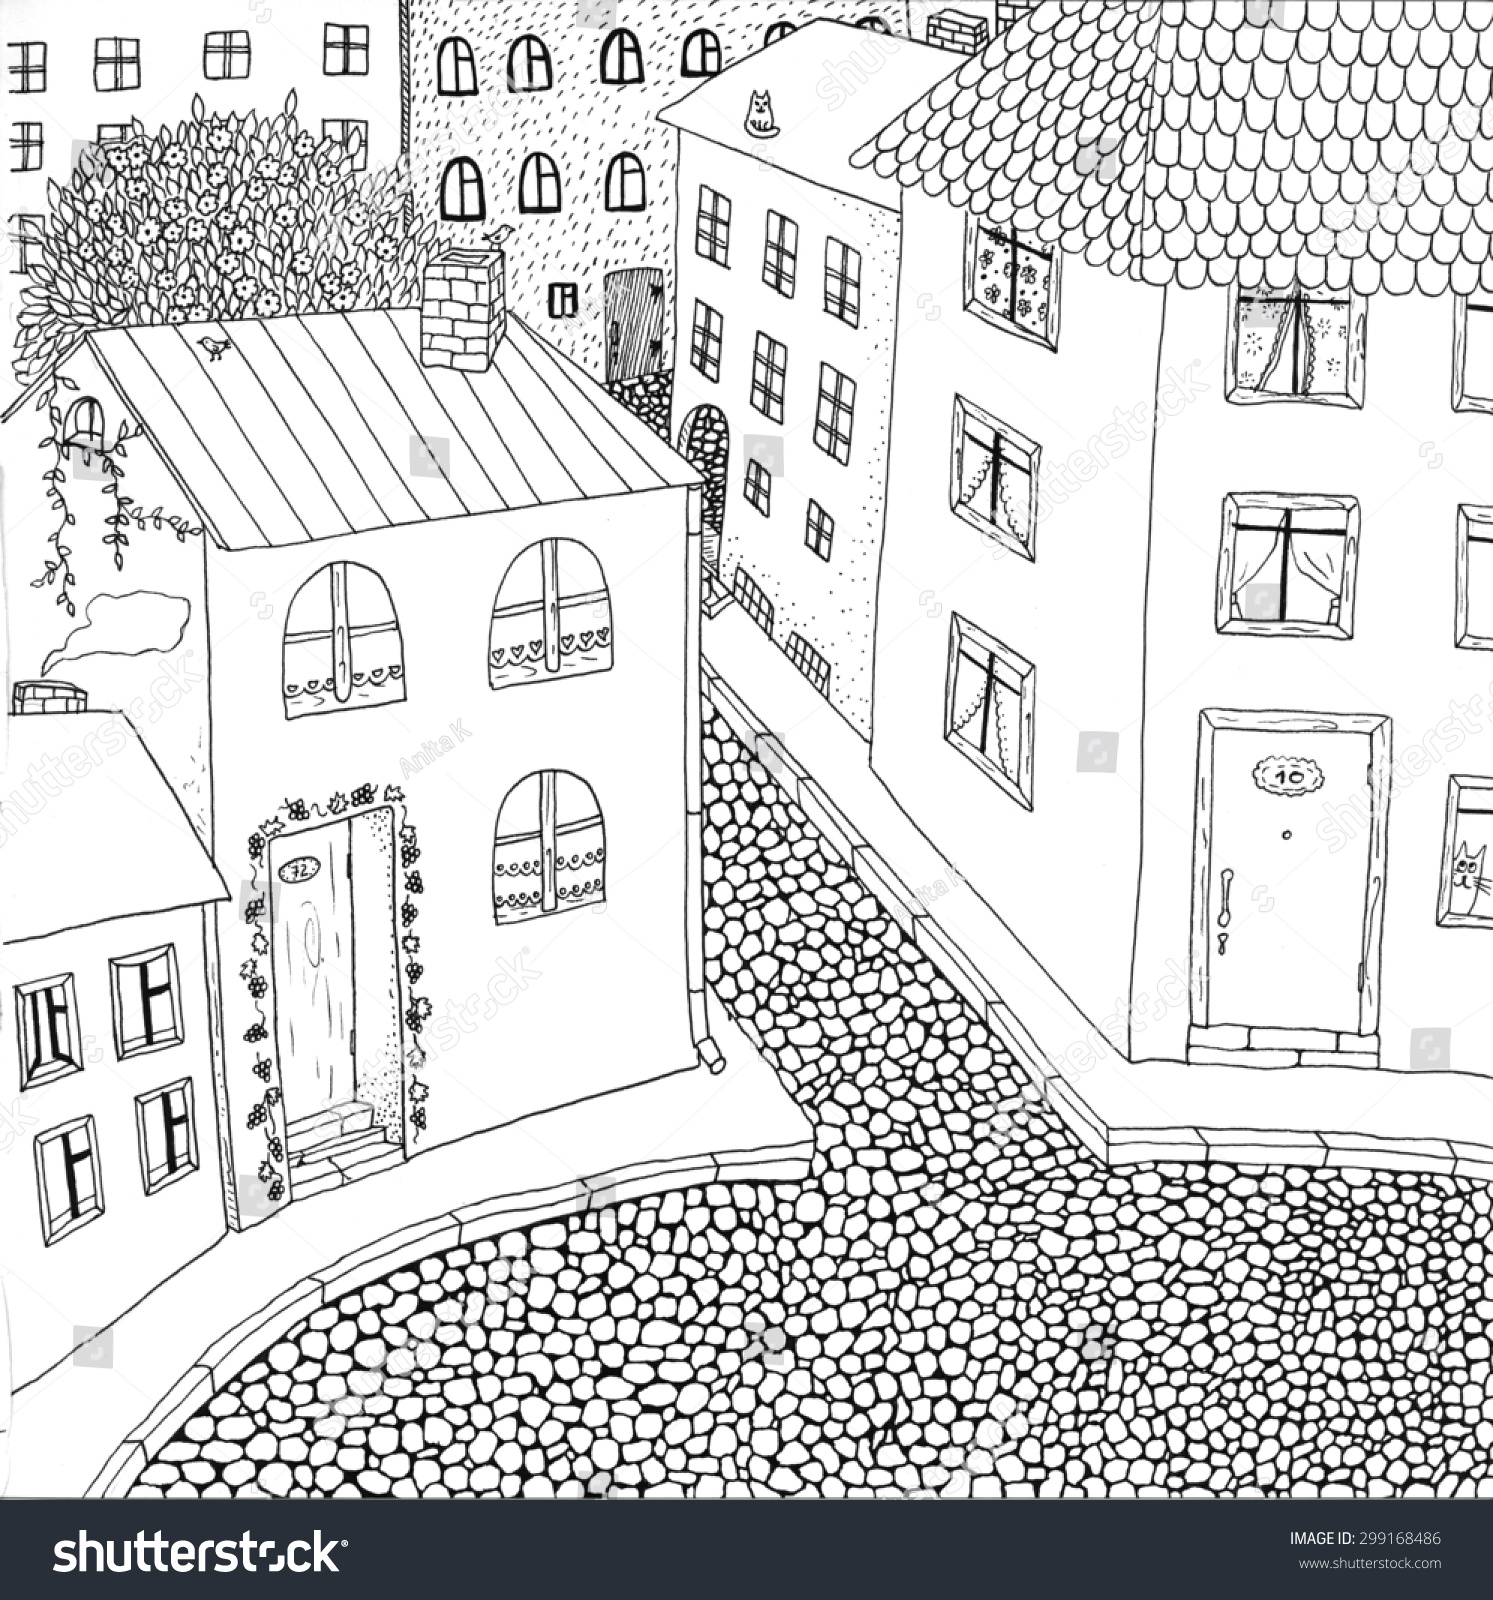 Coloring Page Old Town High Detailed Stock Illustration 299168486